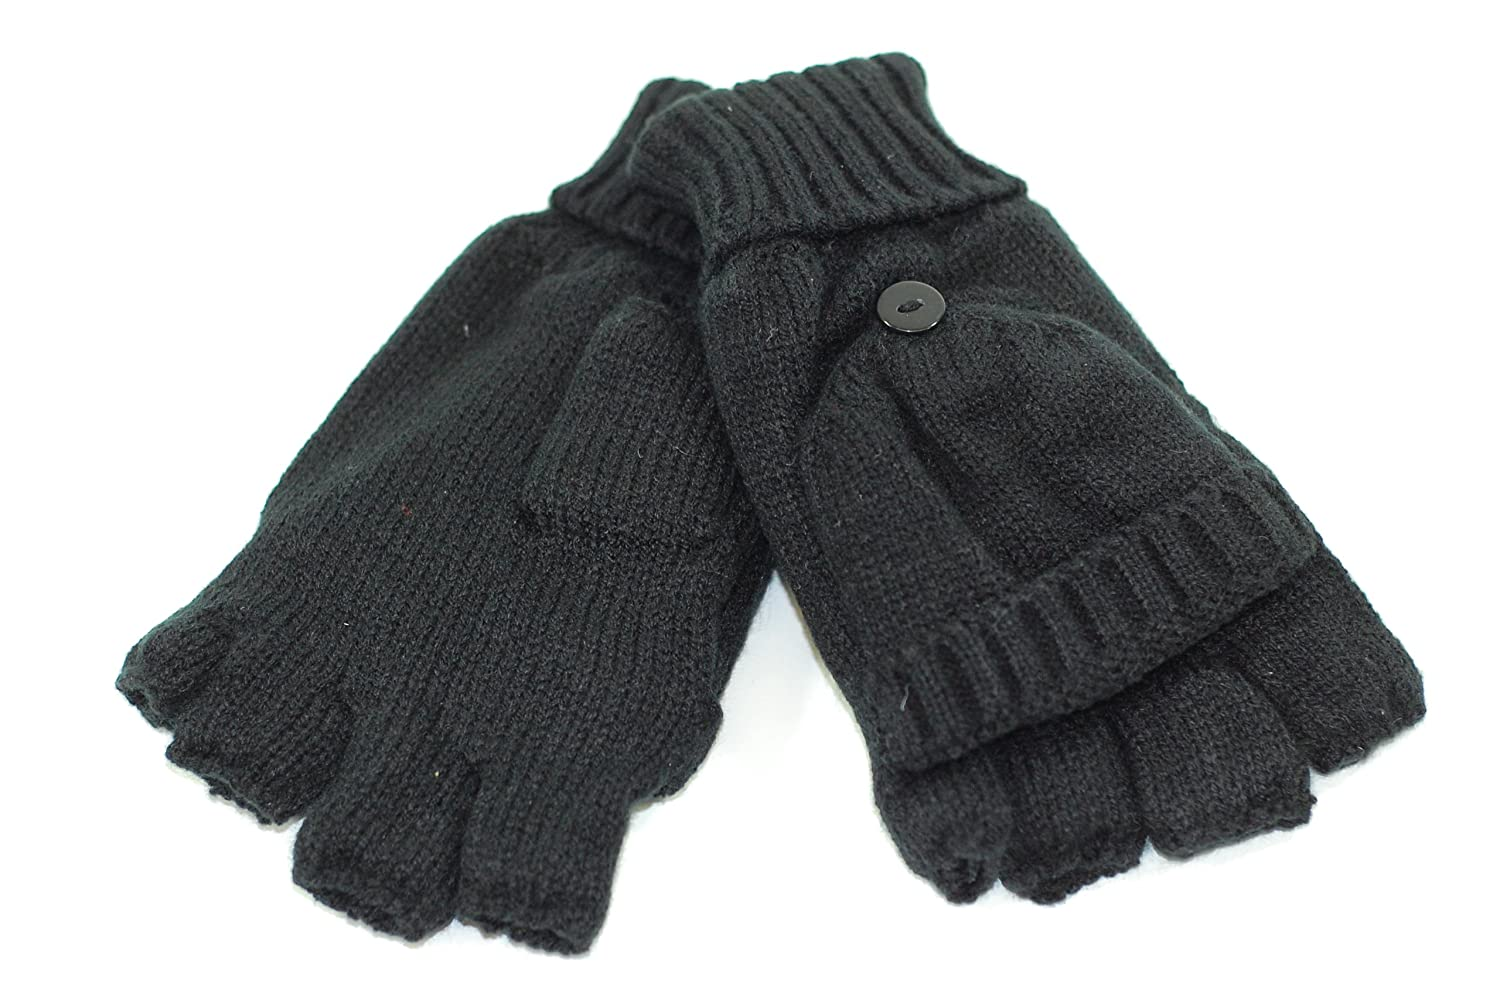 Mens gloves with mitten flap - Adults Mens Thermal Winter Shooter Mittens Mitts Fingerless Gloves Black Amazon Co Uk Clothing